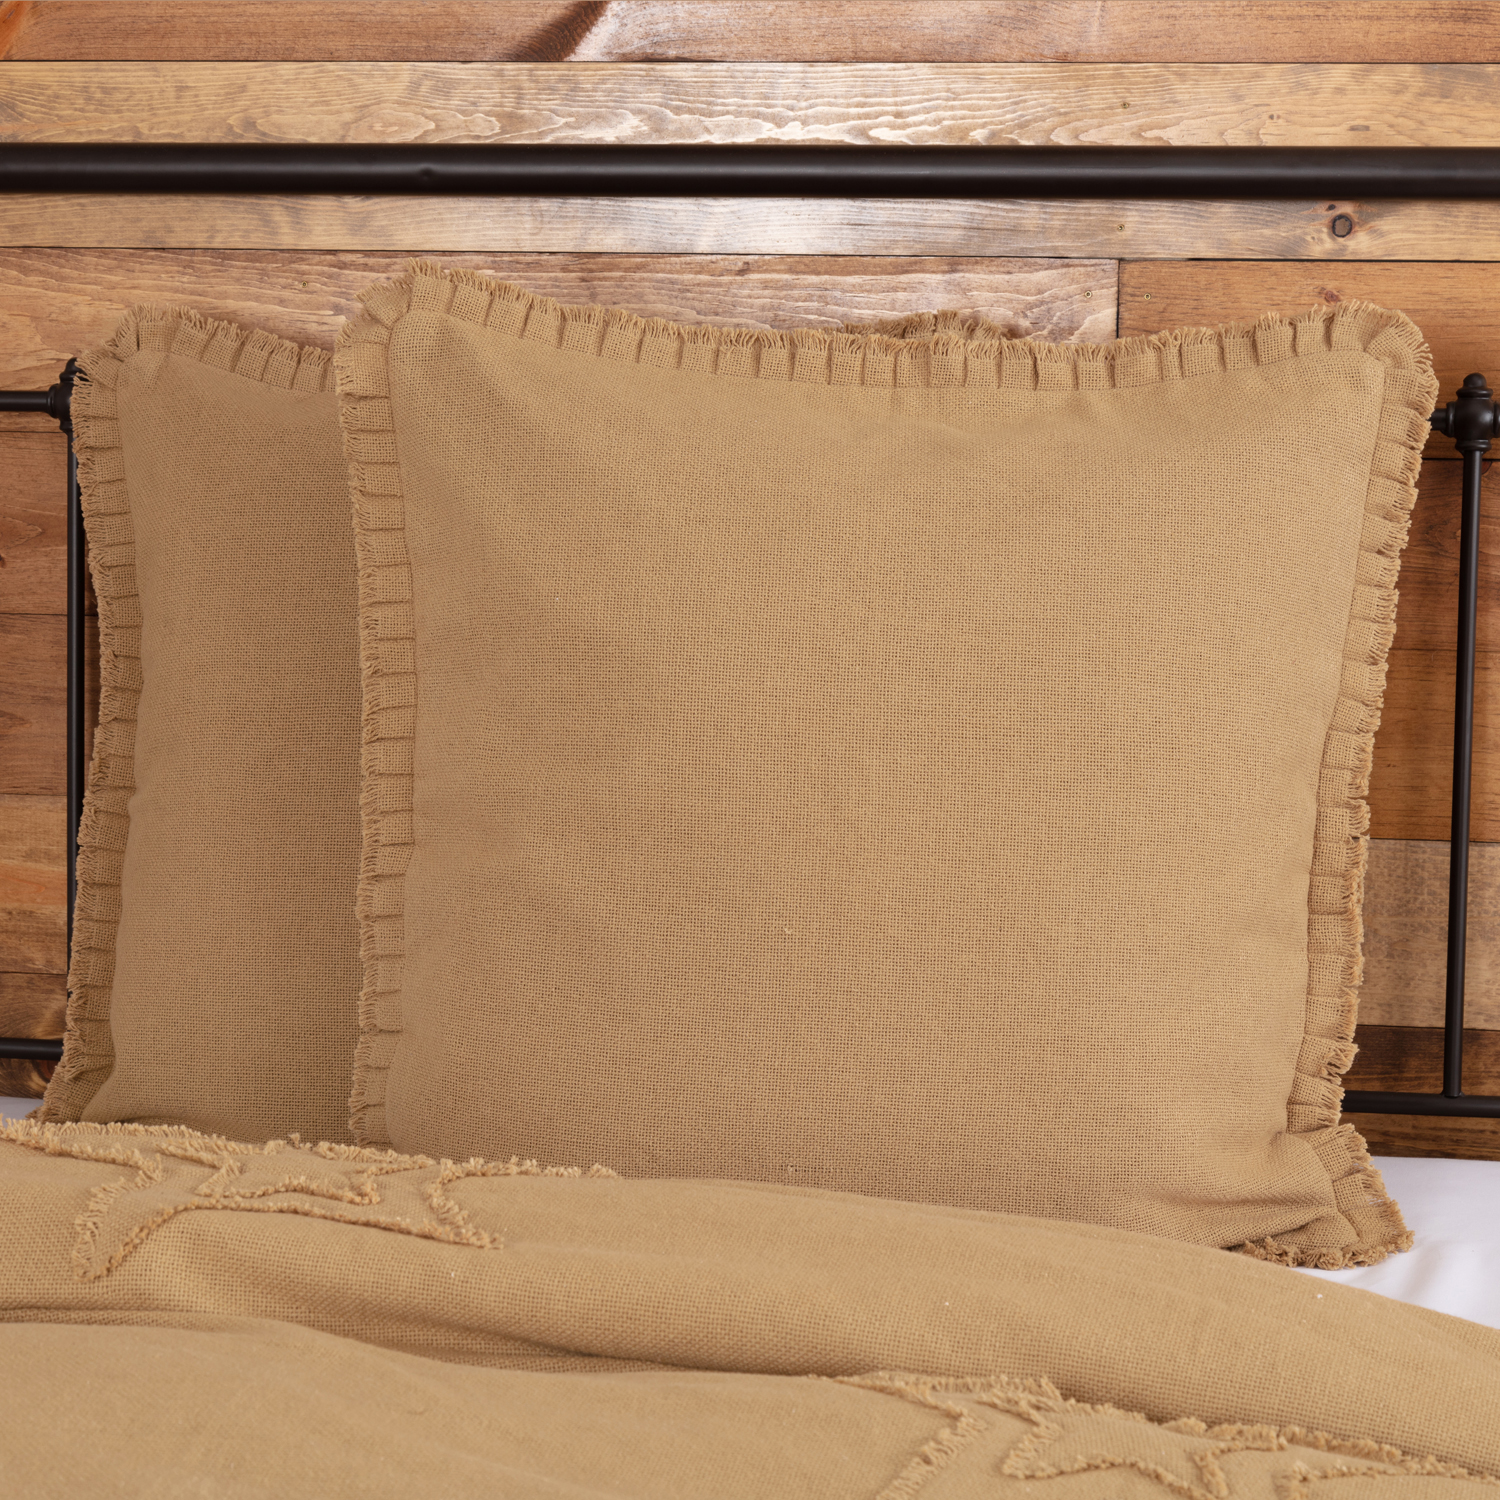 Natural Tan Farmhouse Bedding Veranda Burlap Tan Fringed Ruffle Cotton Cotton Burlap Solid Color Euro Sham